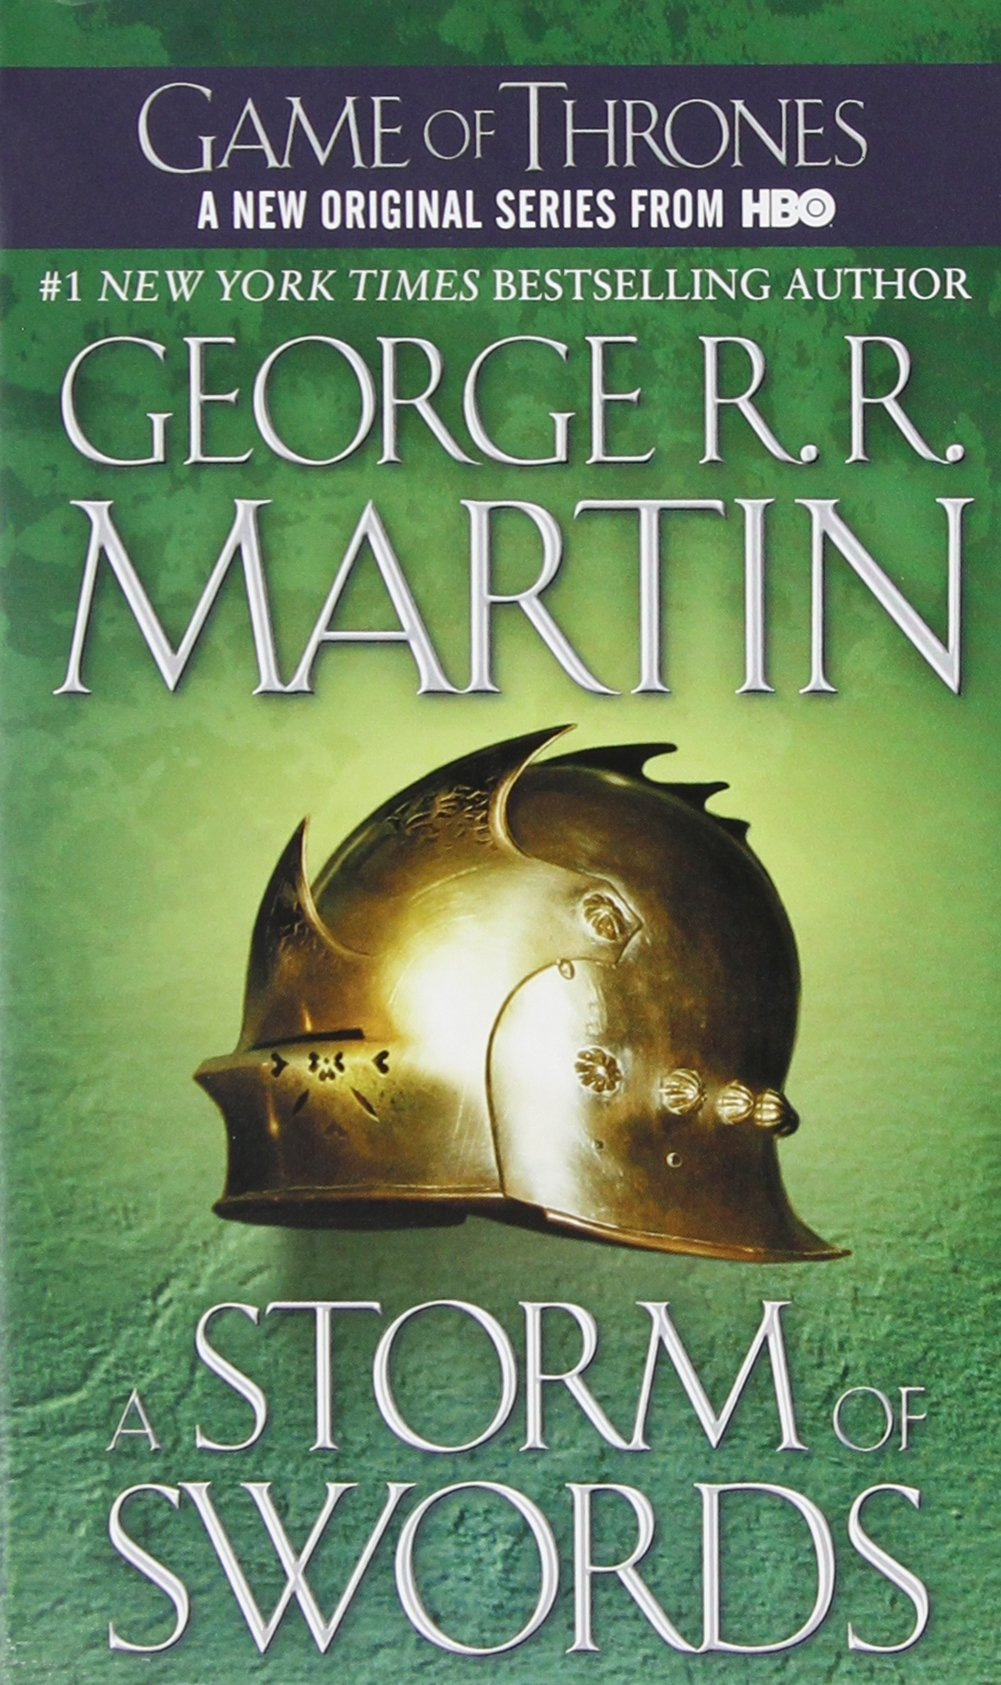 Game of thrones book series book 5